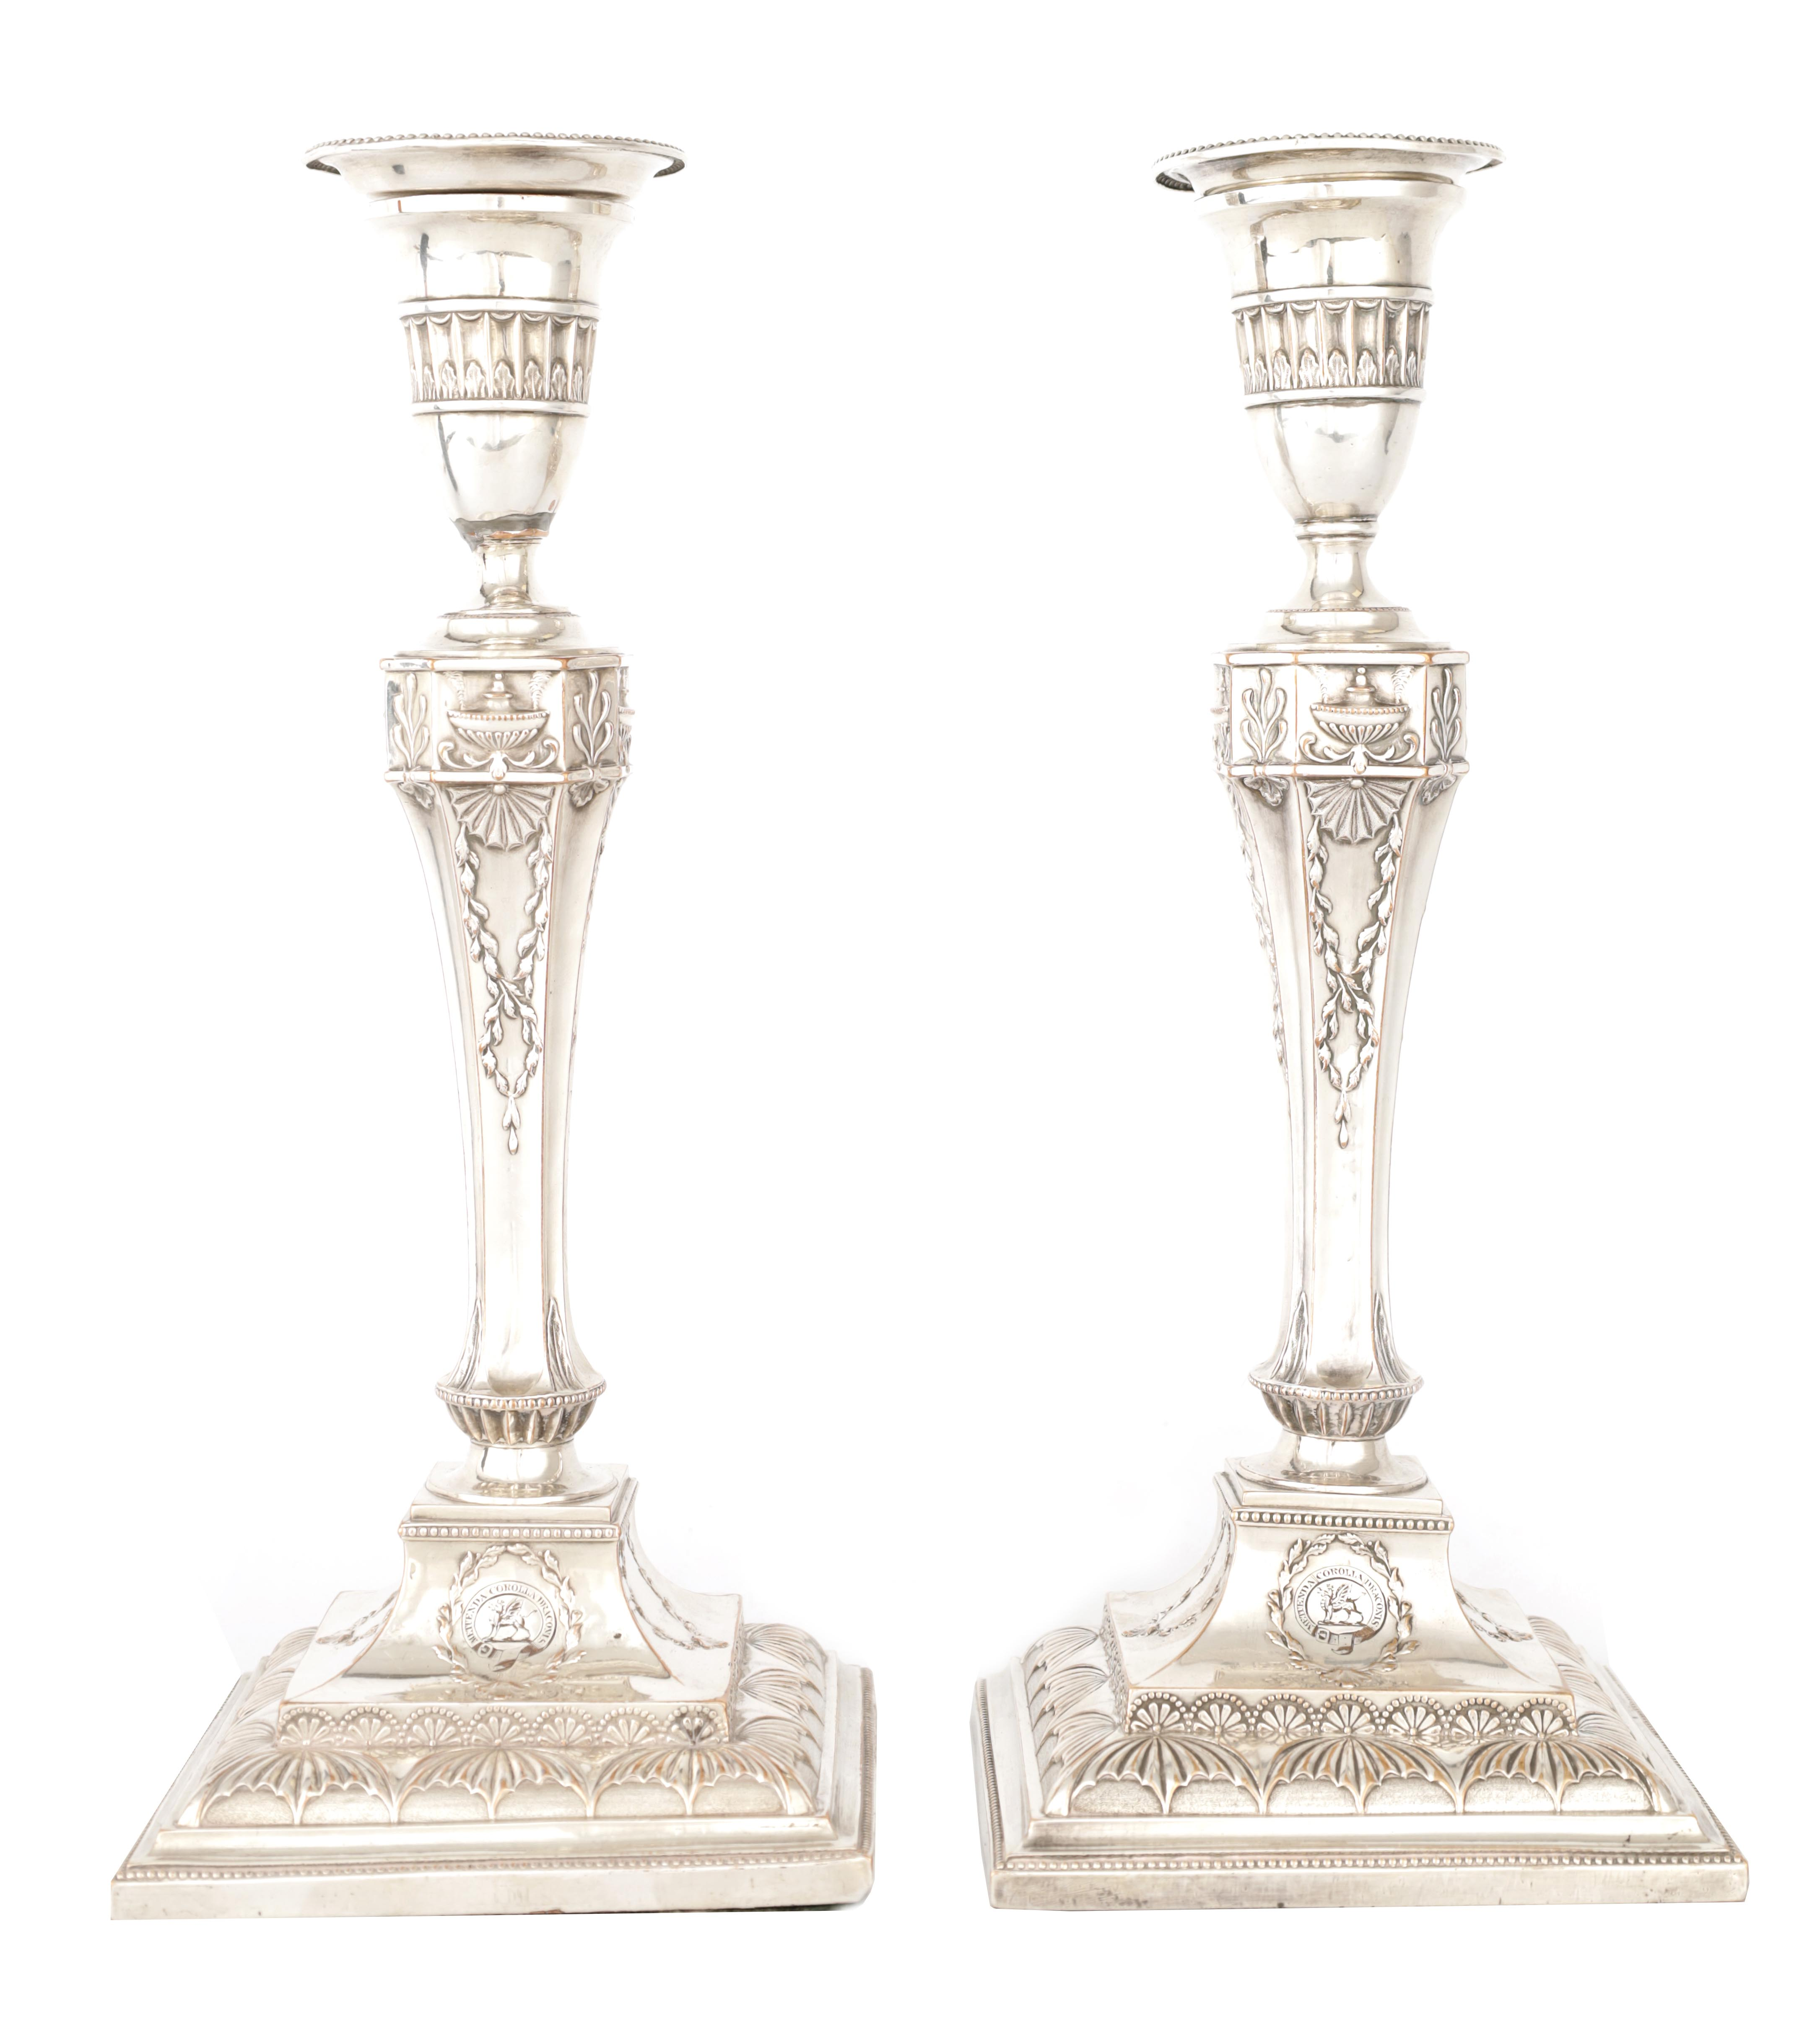 A PAIR OF 19TH CENTURY SHEFFIELD PLATE SILVER ON COPPER ADAM STYLE CANDLESTICKS bearing the crest